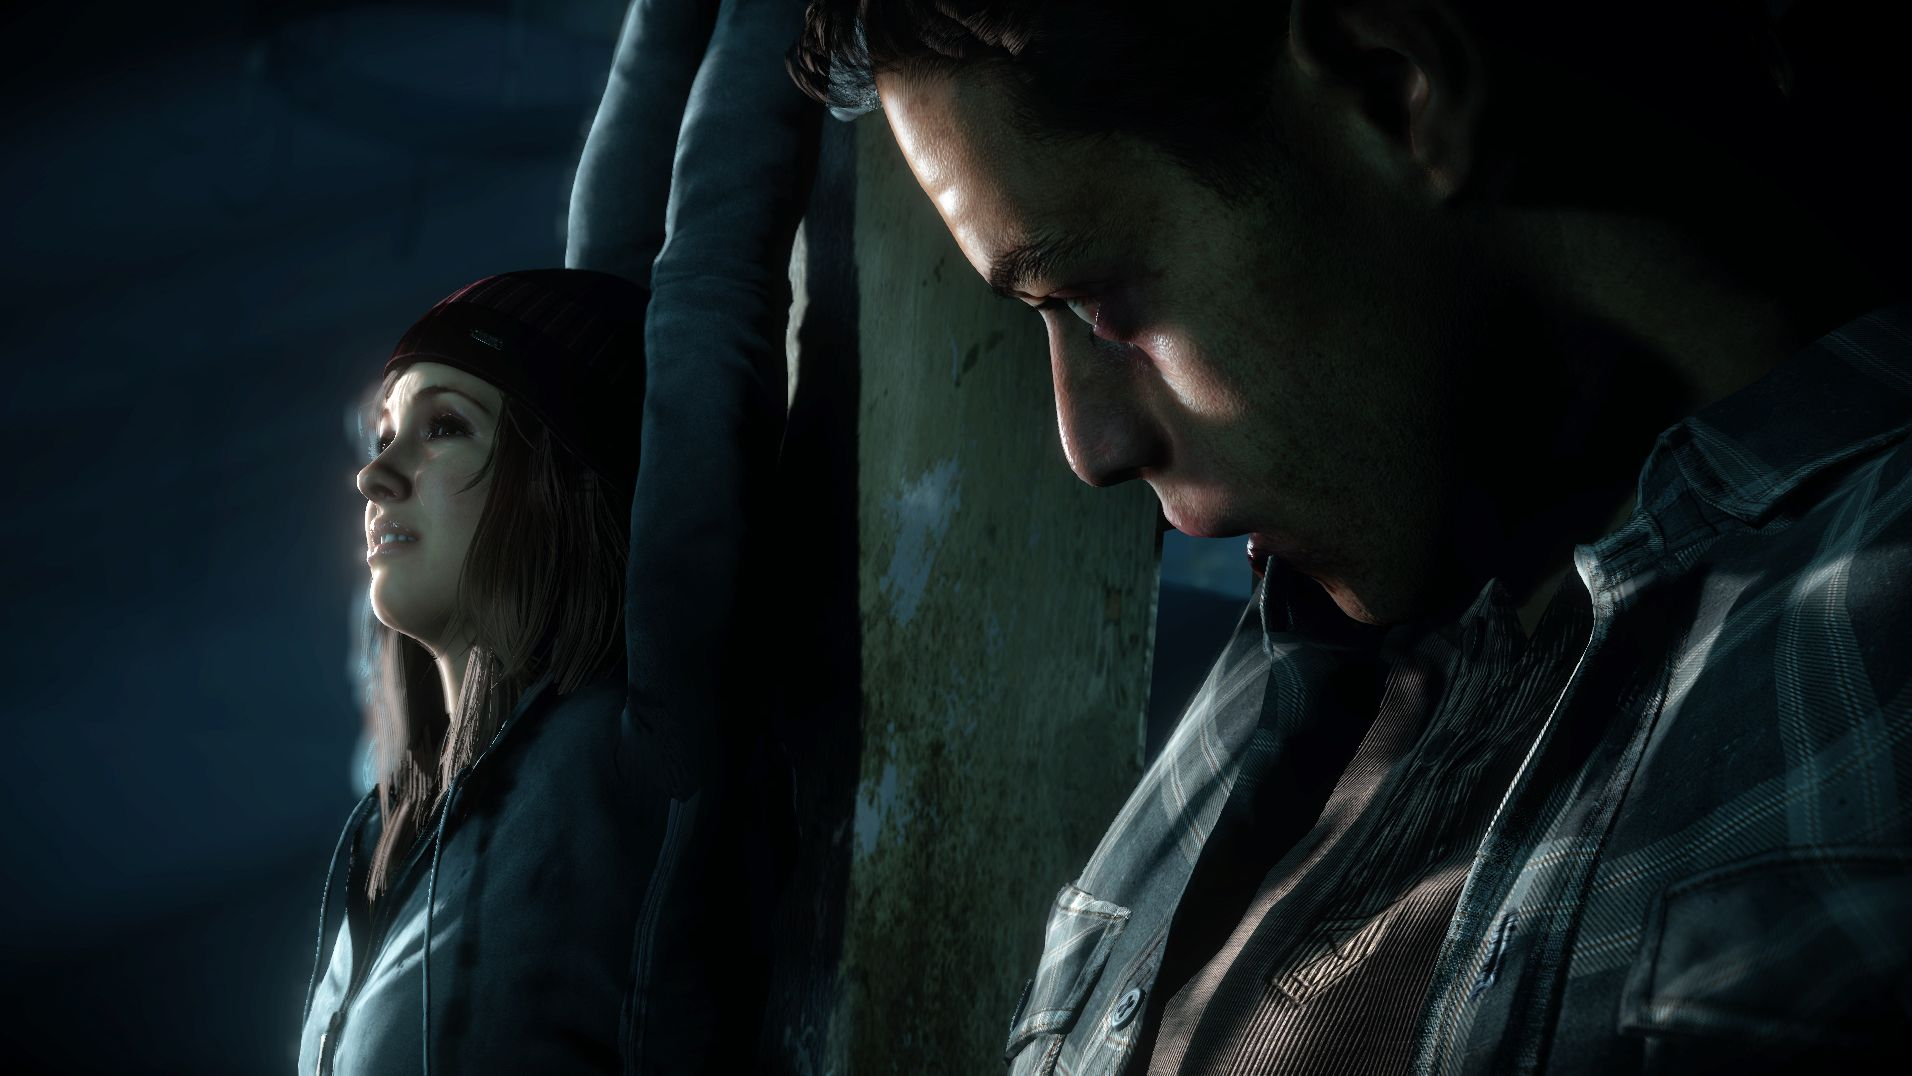 Best Horror Games 2020 The Scariest Games To Play On Console And Pc Scary Games Best Horrors Scary Games To Play